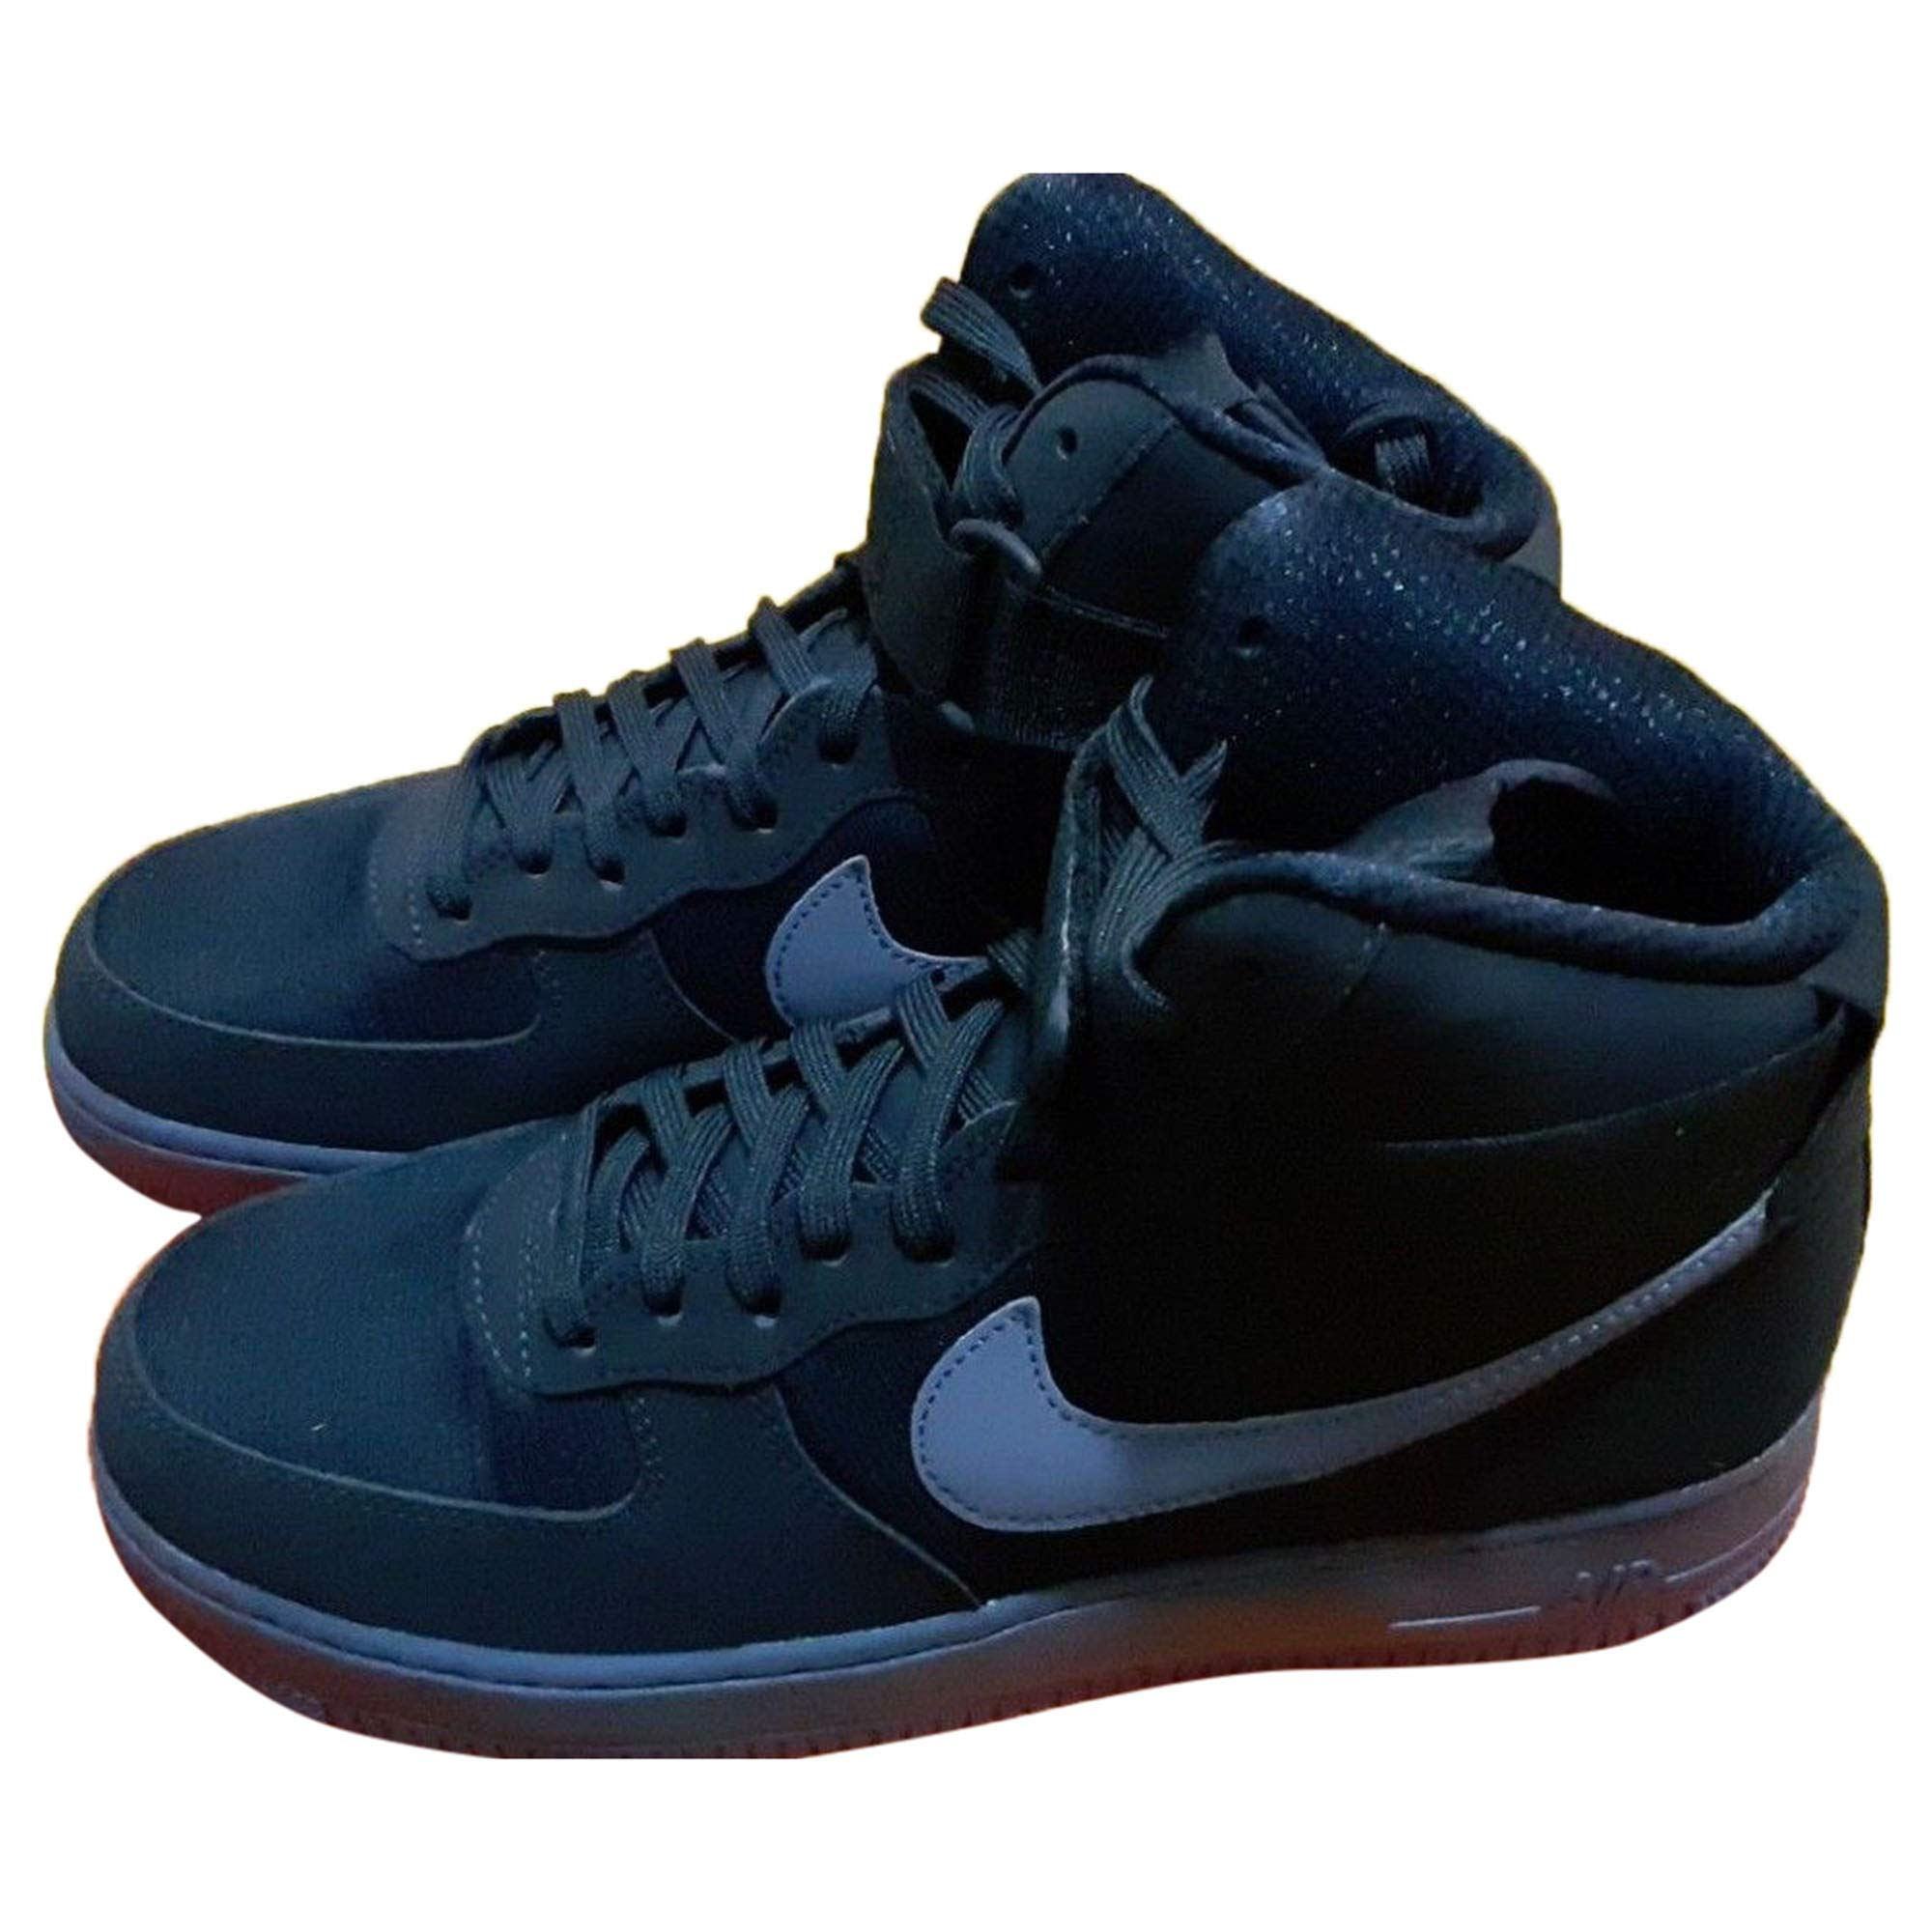 sale retailer 4a0cb a76cb Galleon - Nike Air Force 1 High  07 Mens Style   315121-416 Size   8.5 M US